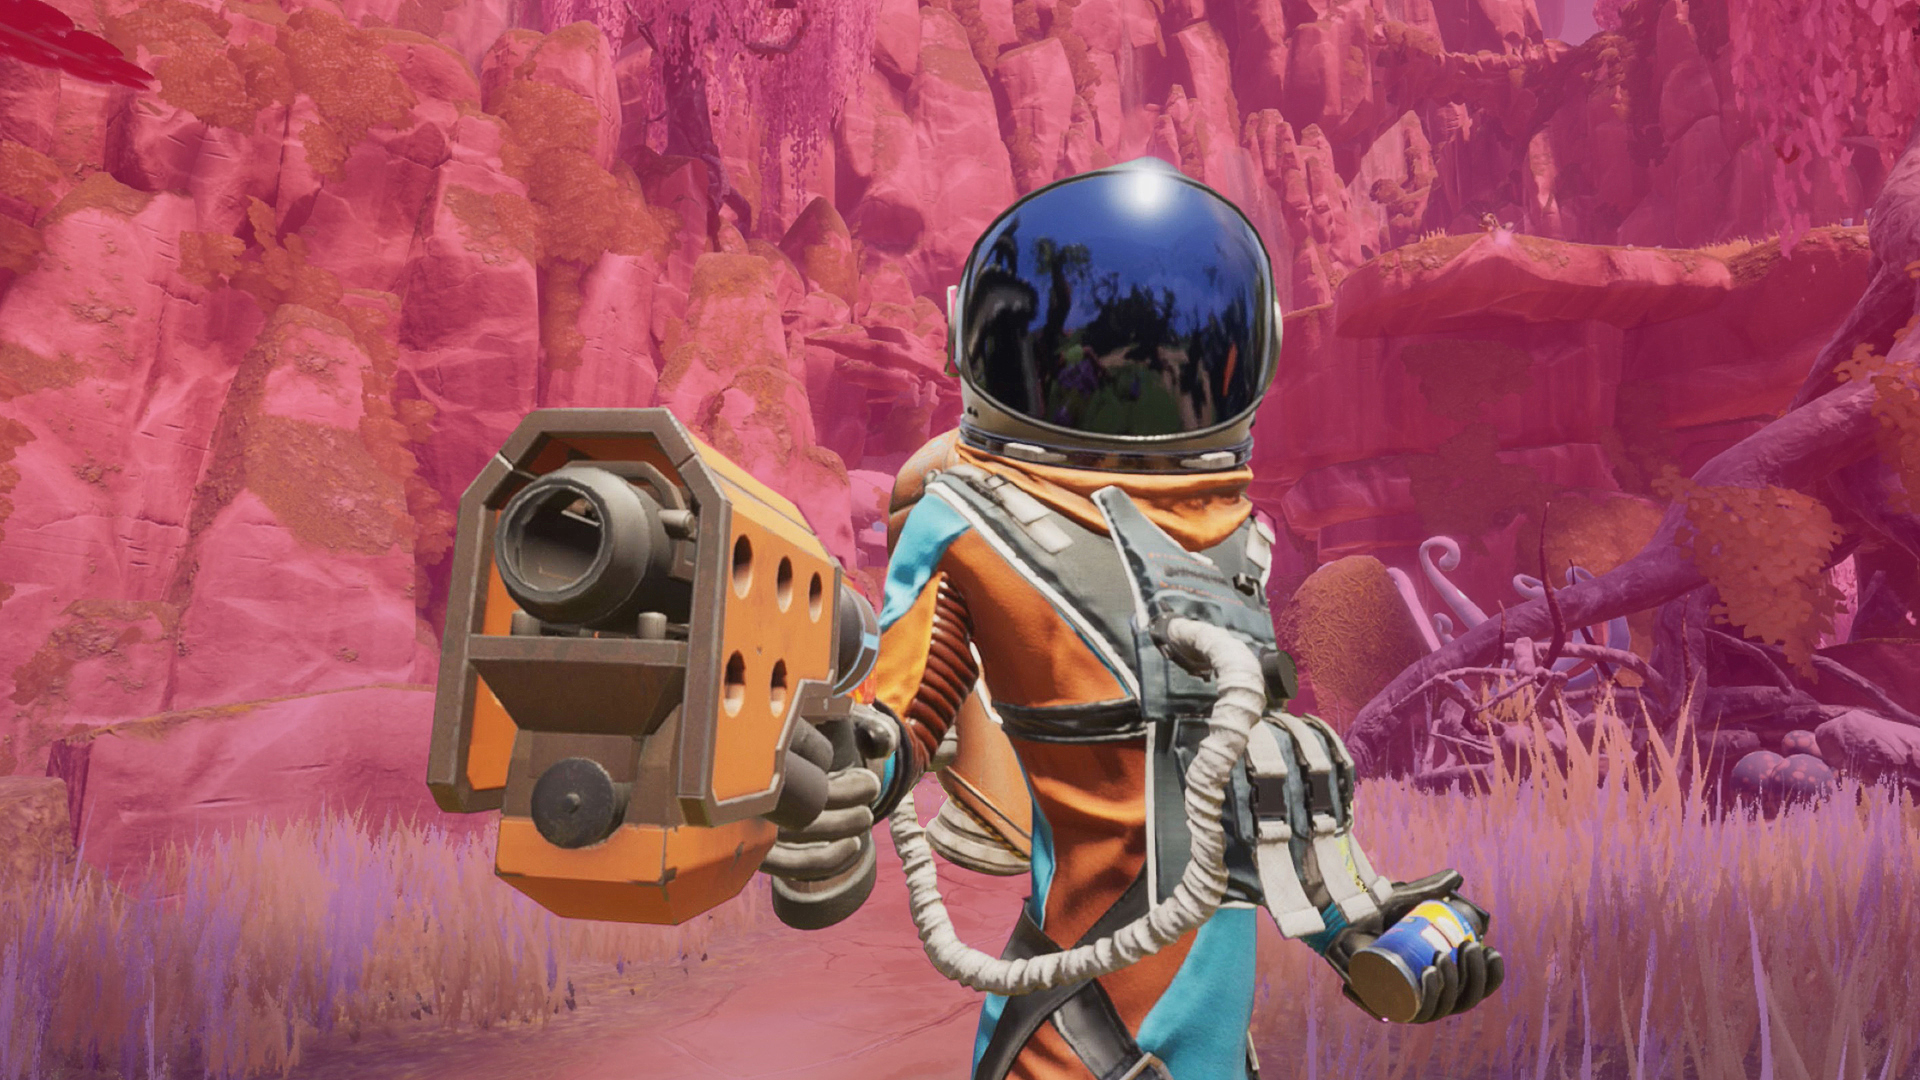 Character in orange and blue space suit and dark blue visor pointing a laser gun